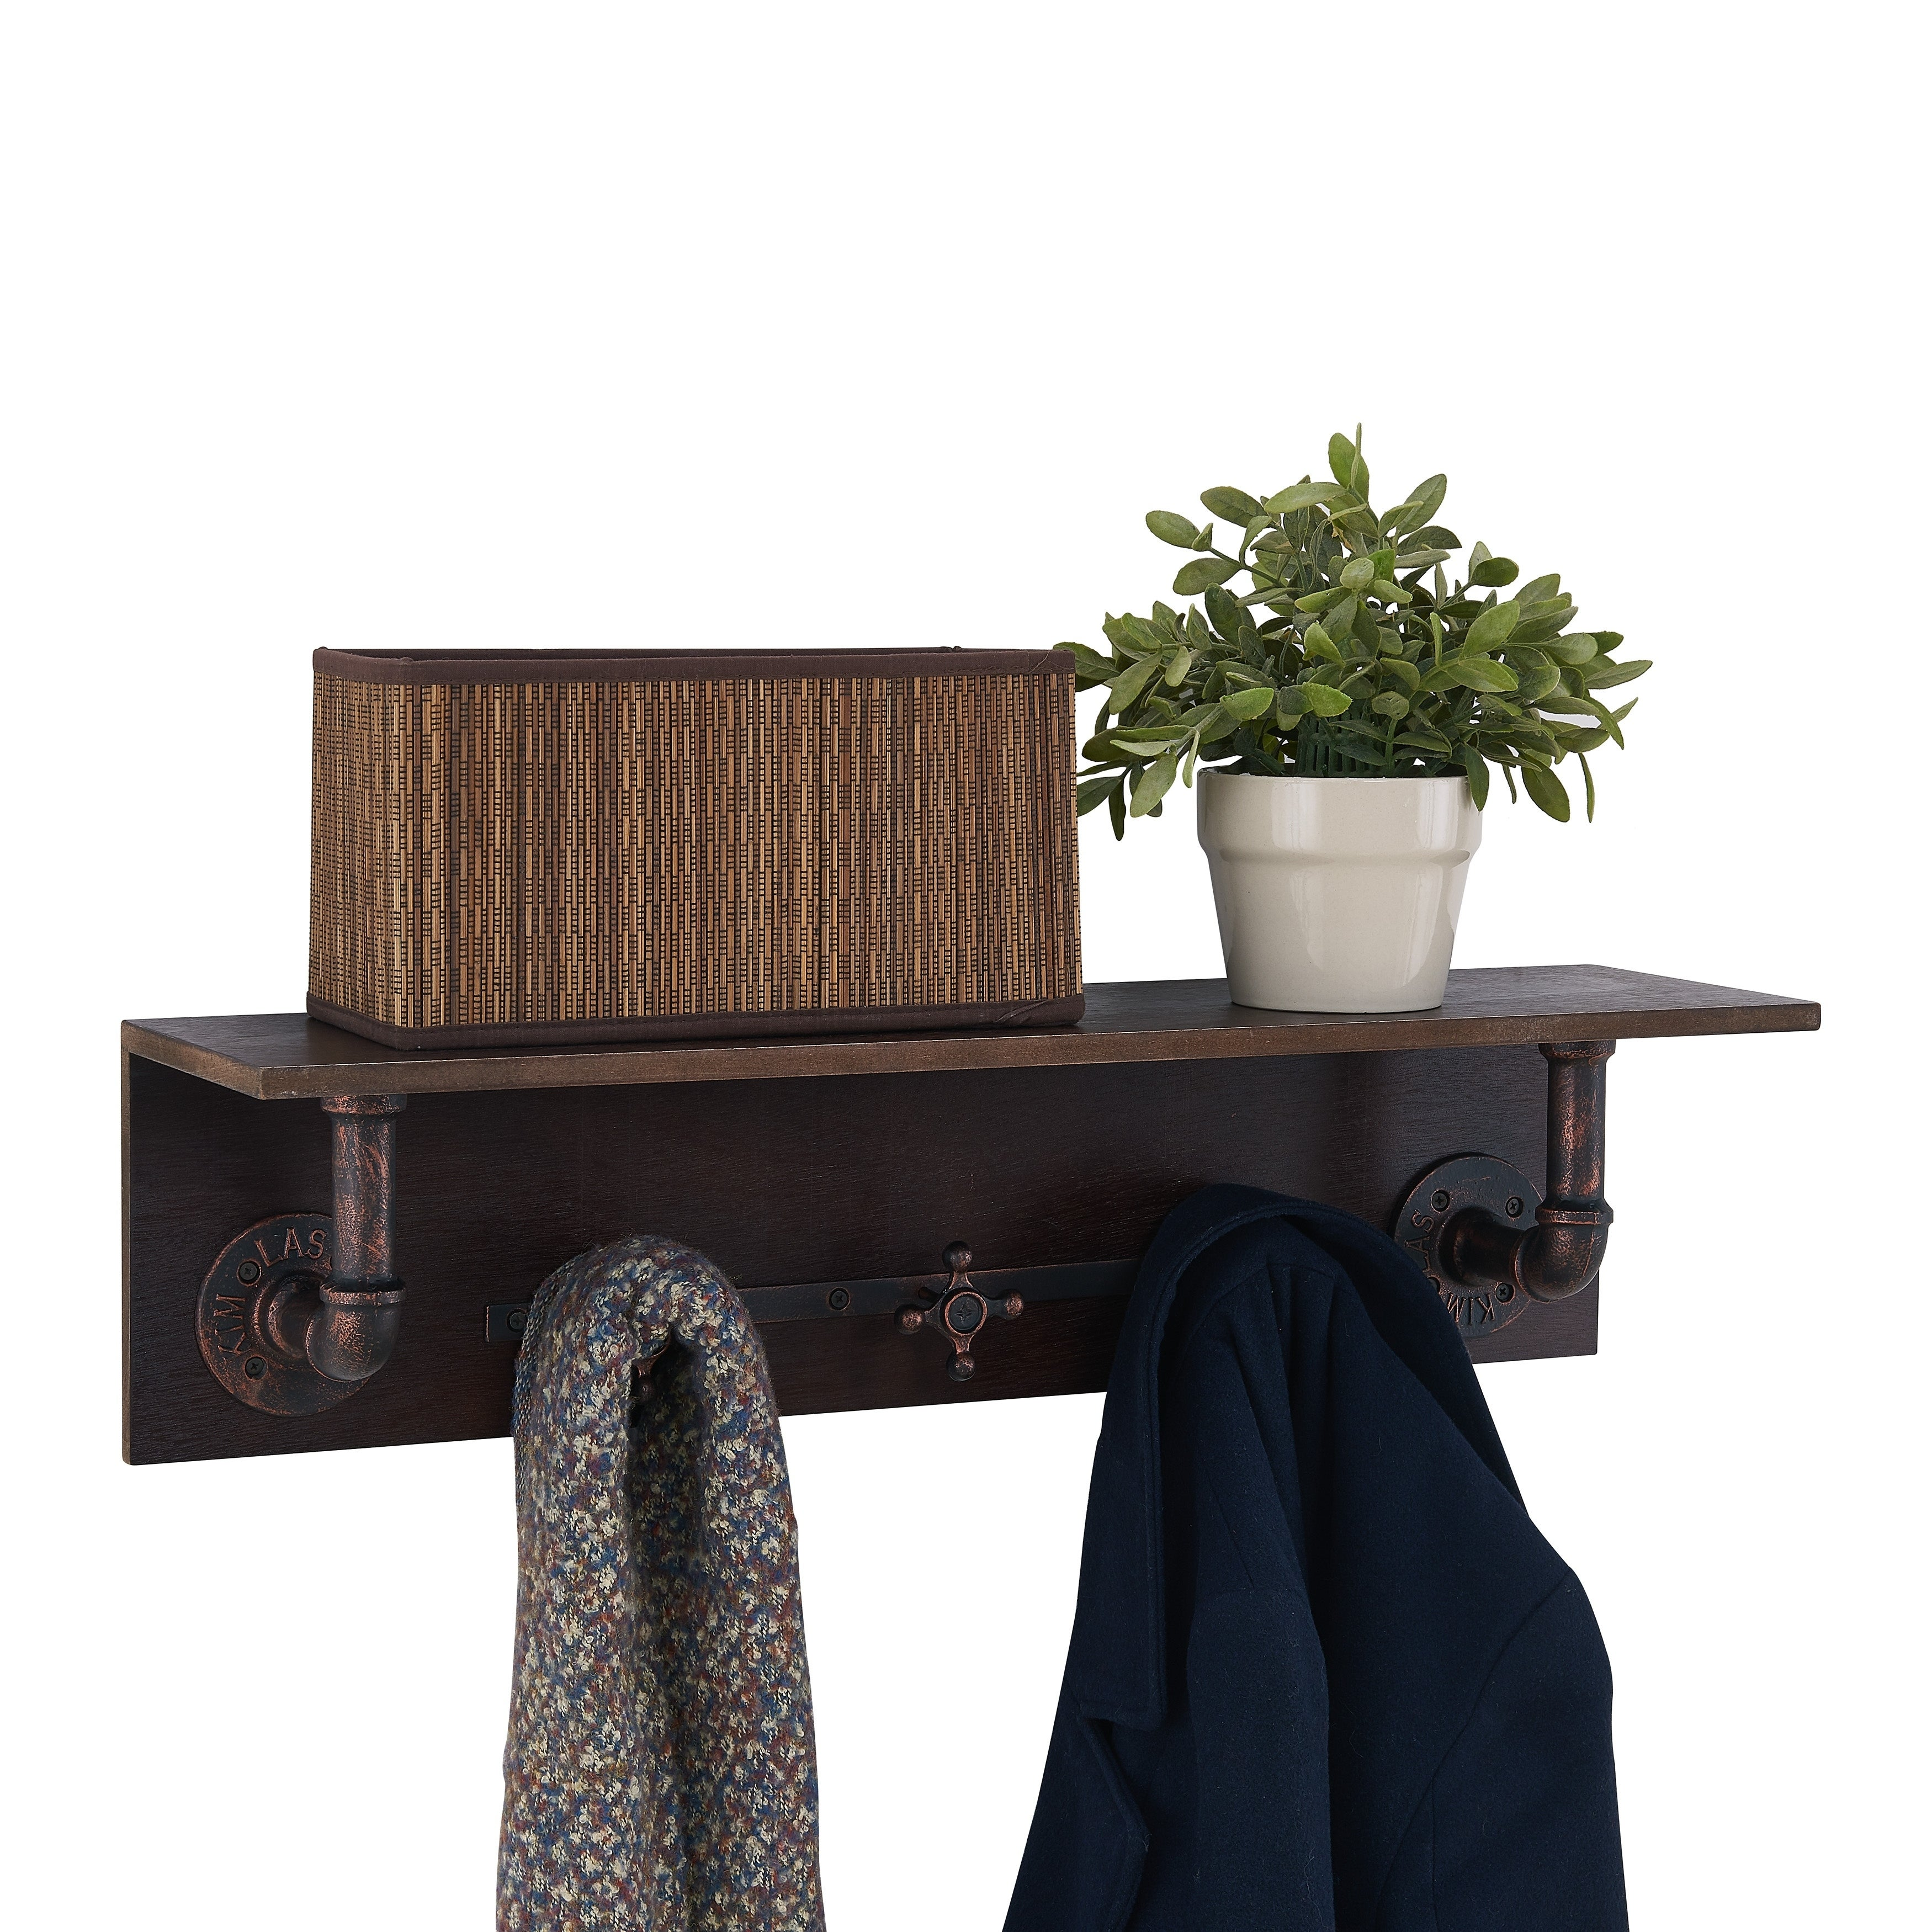 Carbon Loft Habersberger Wall Mount Wooden Coat Rack With Pipes And Water Faucet Hooks